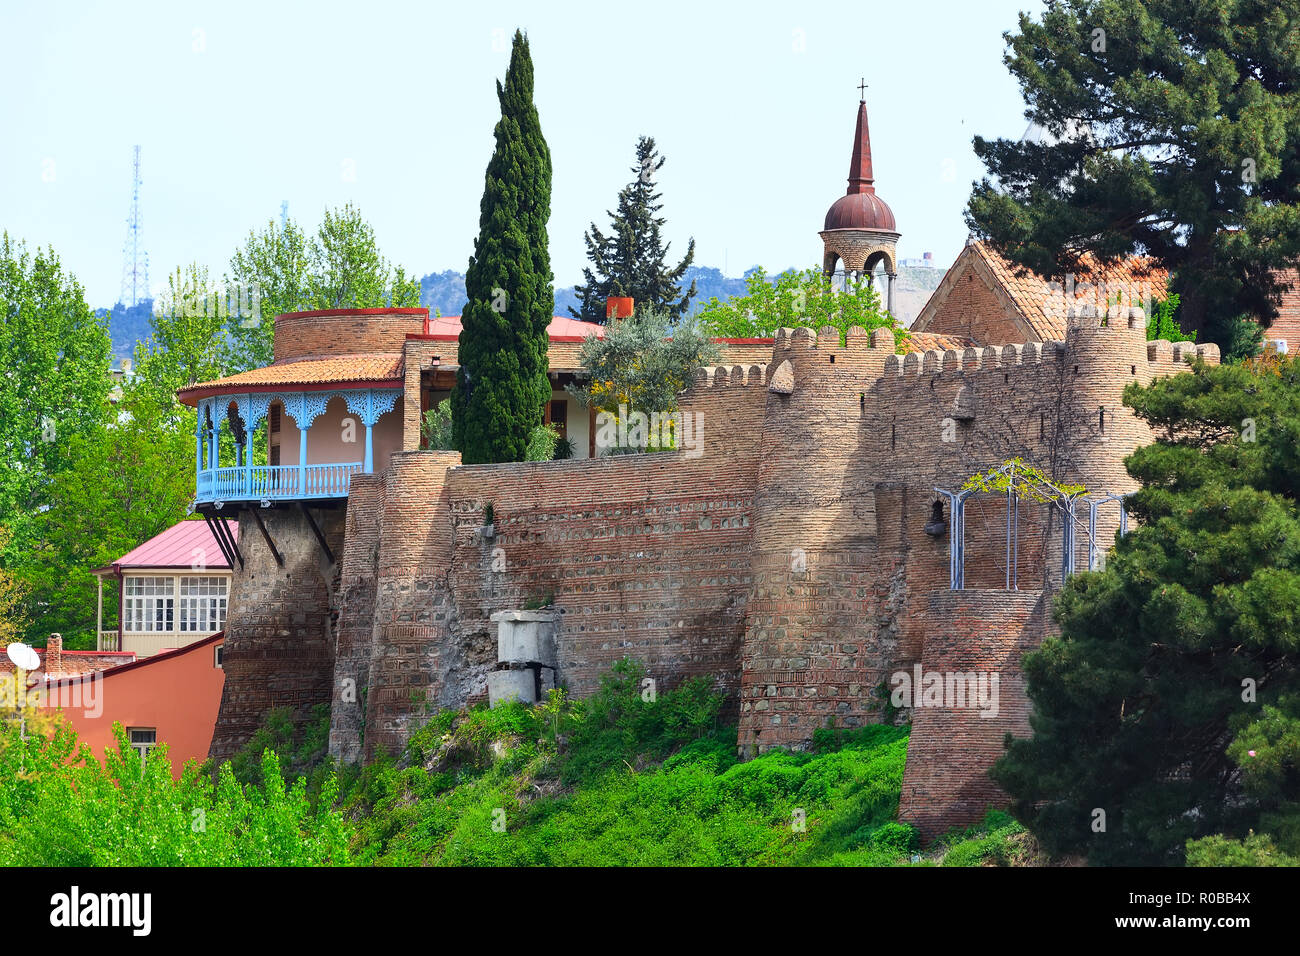 old traditional houses, wall and tower in Old Town of Tbilisi, Georgia Stock Photo